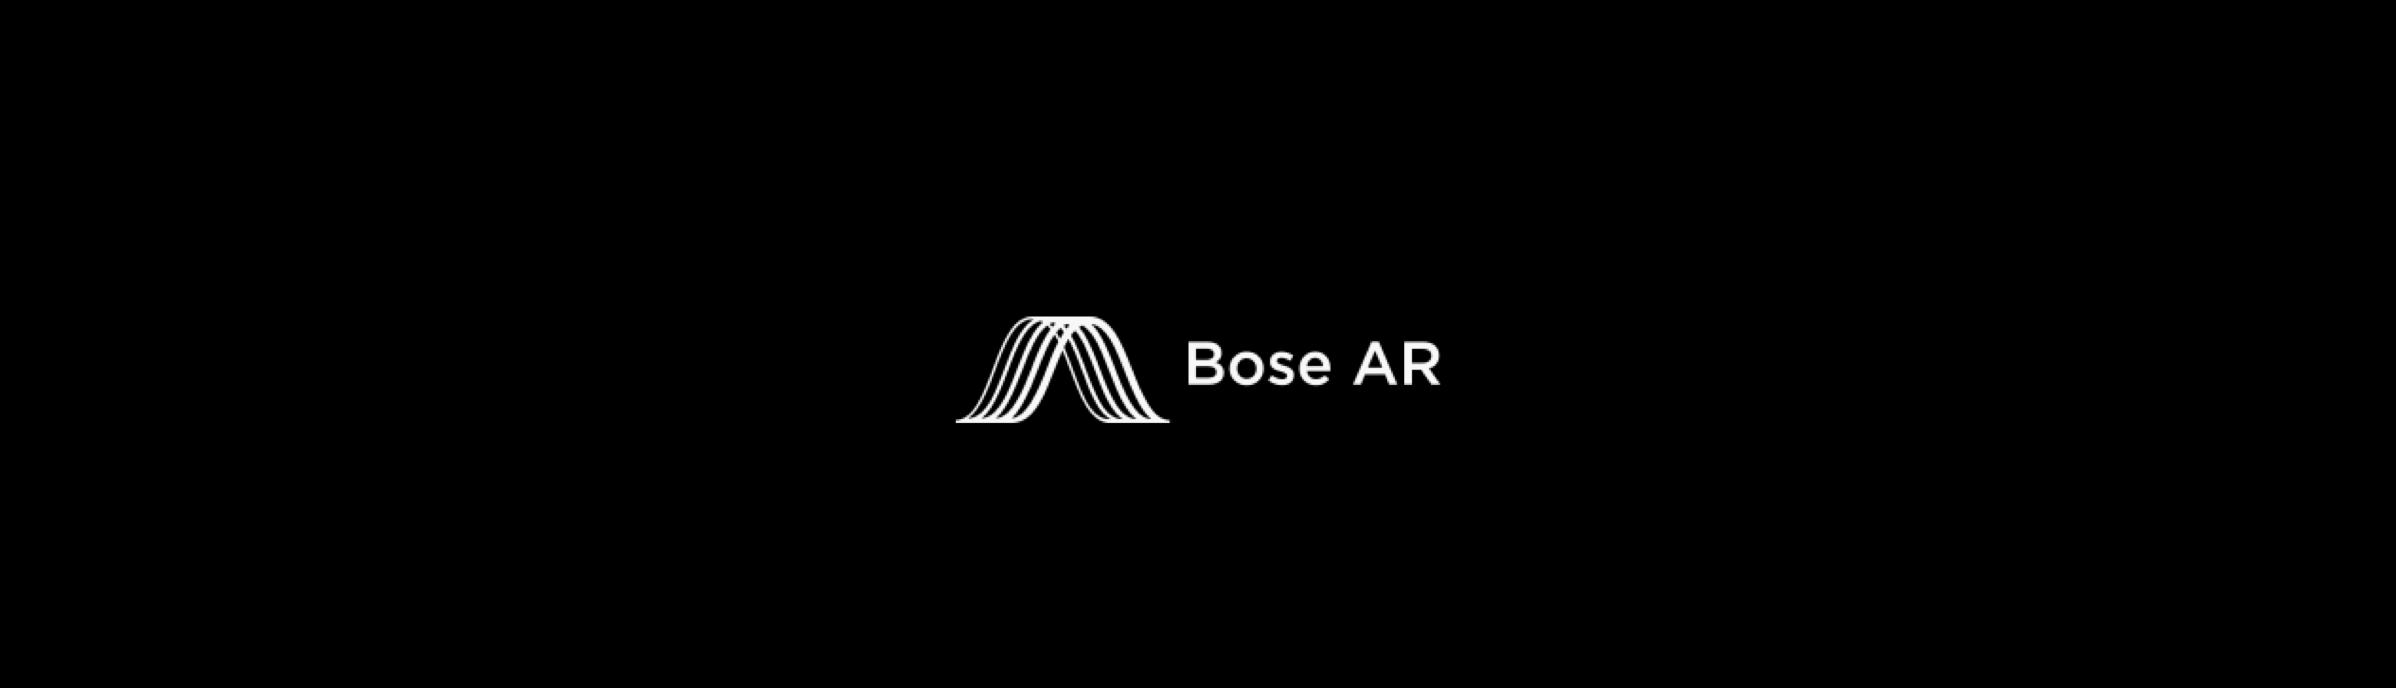 Bose AR.png